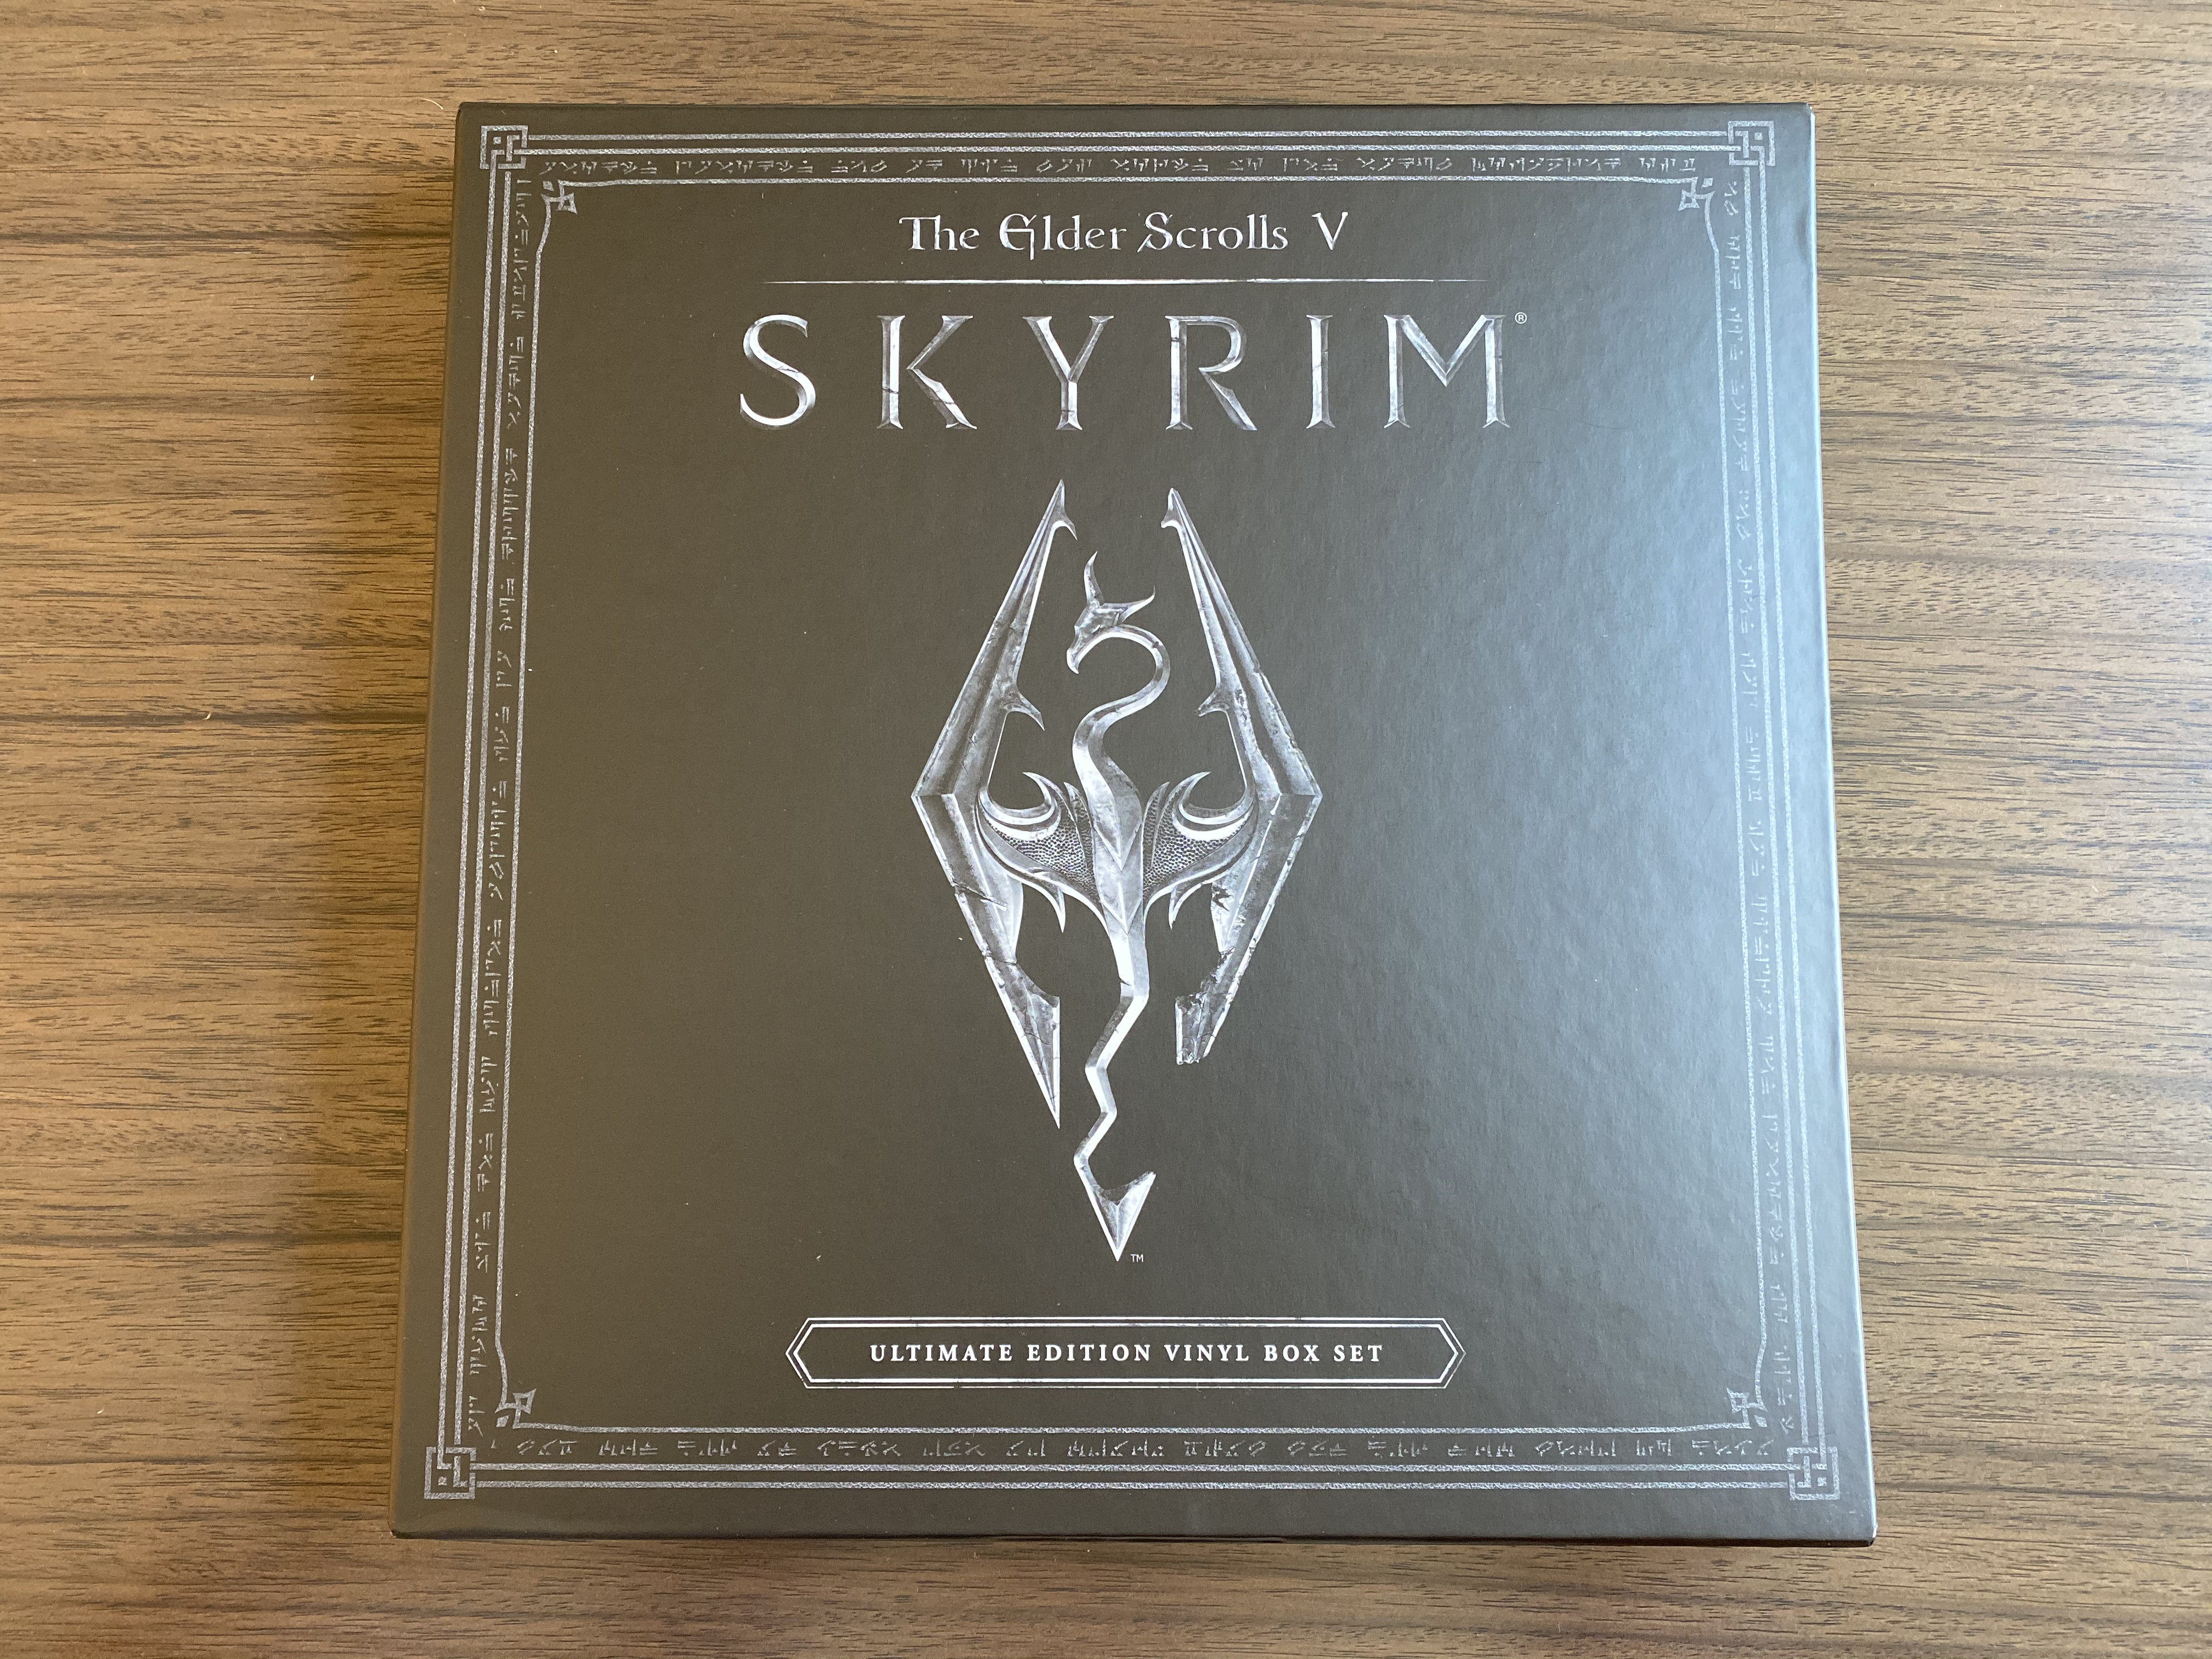 Kennon-Green Elder Scrolls V Skyrim Ultimate Edition Vinyl Box Set Sweet Roll Comic Con Limited LP - Unsealed Front